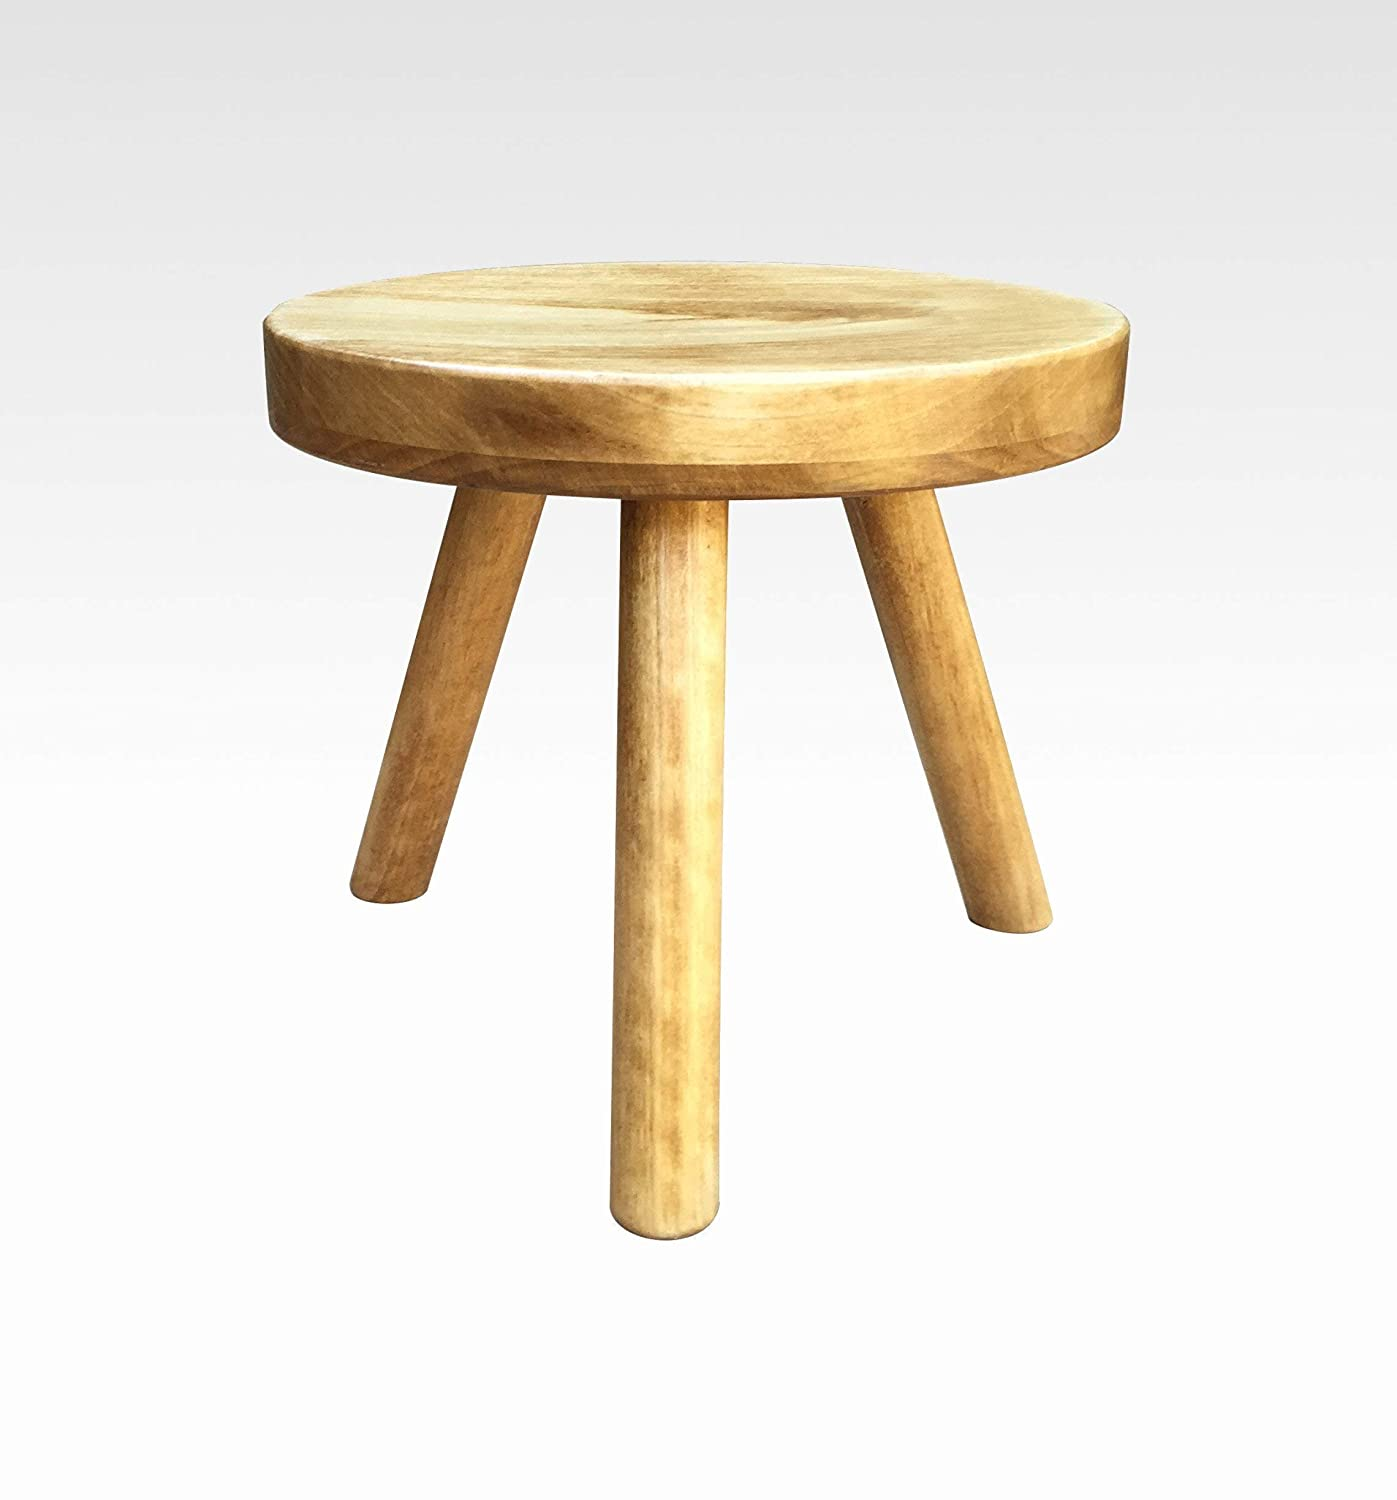 Three legged rustic wood stool